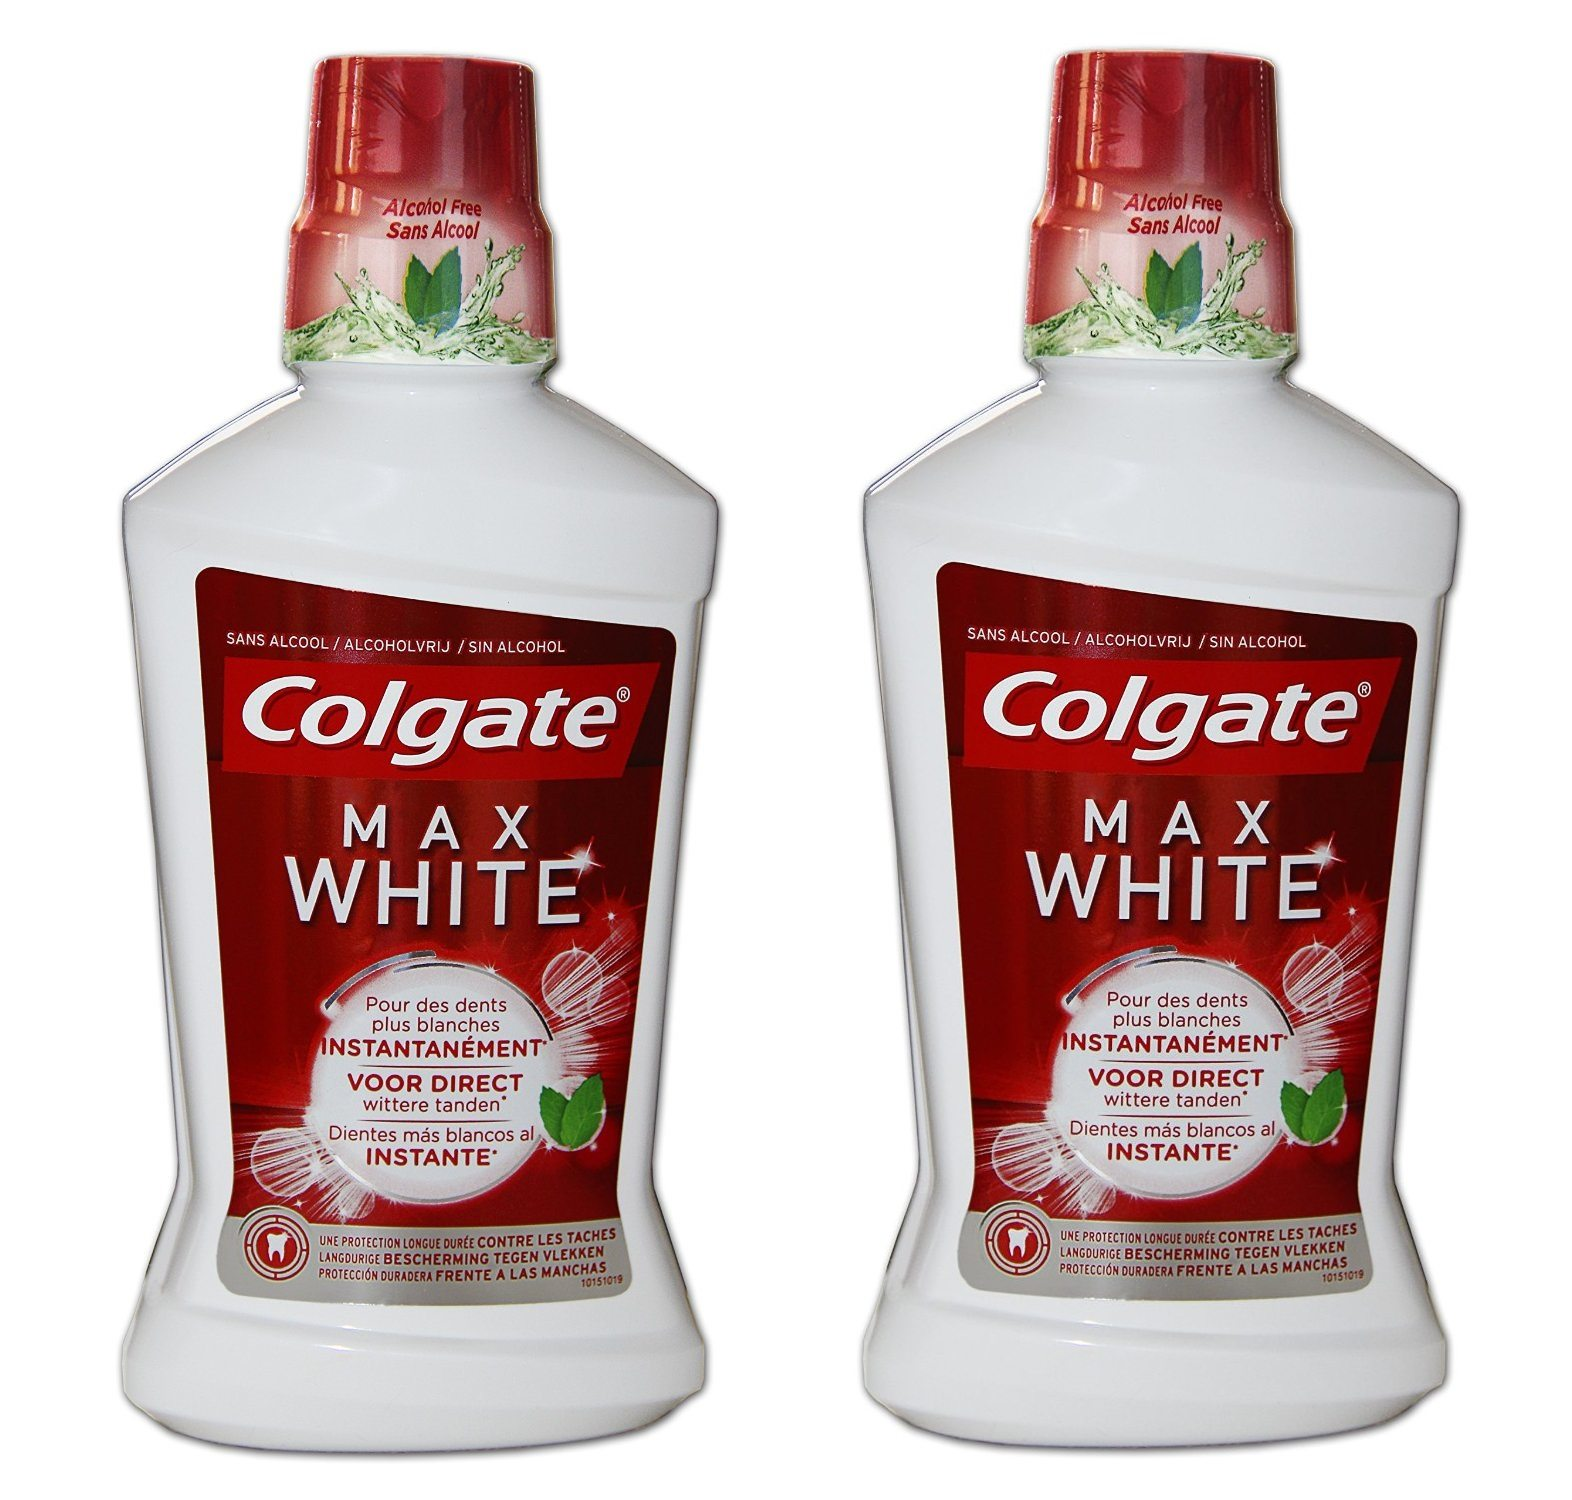 Enjuague bucal Colgate plax mwo 500 ml (Pack de 2)